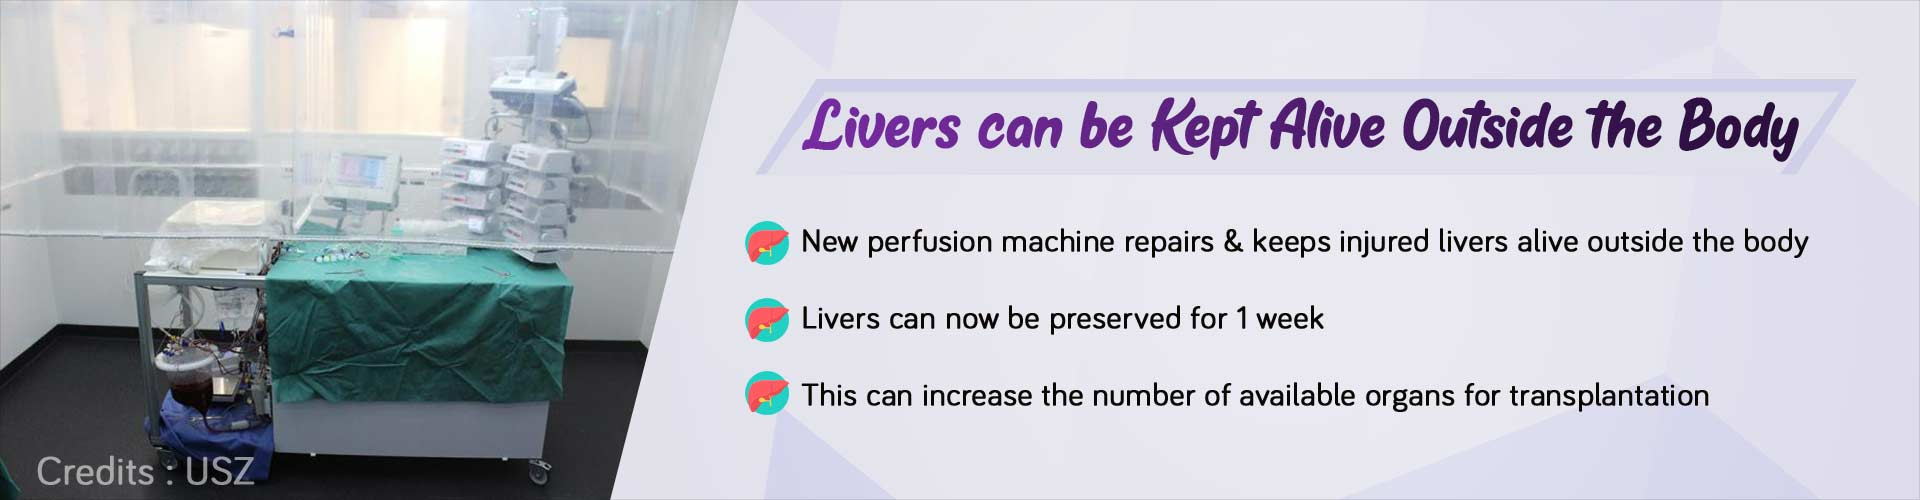 Perfusion Machine can Keep Human Livers Alive Outside the Body for 1 Week